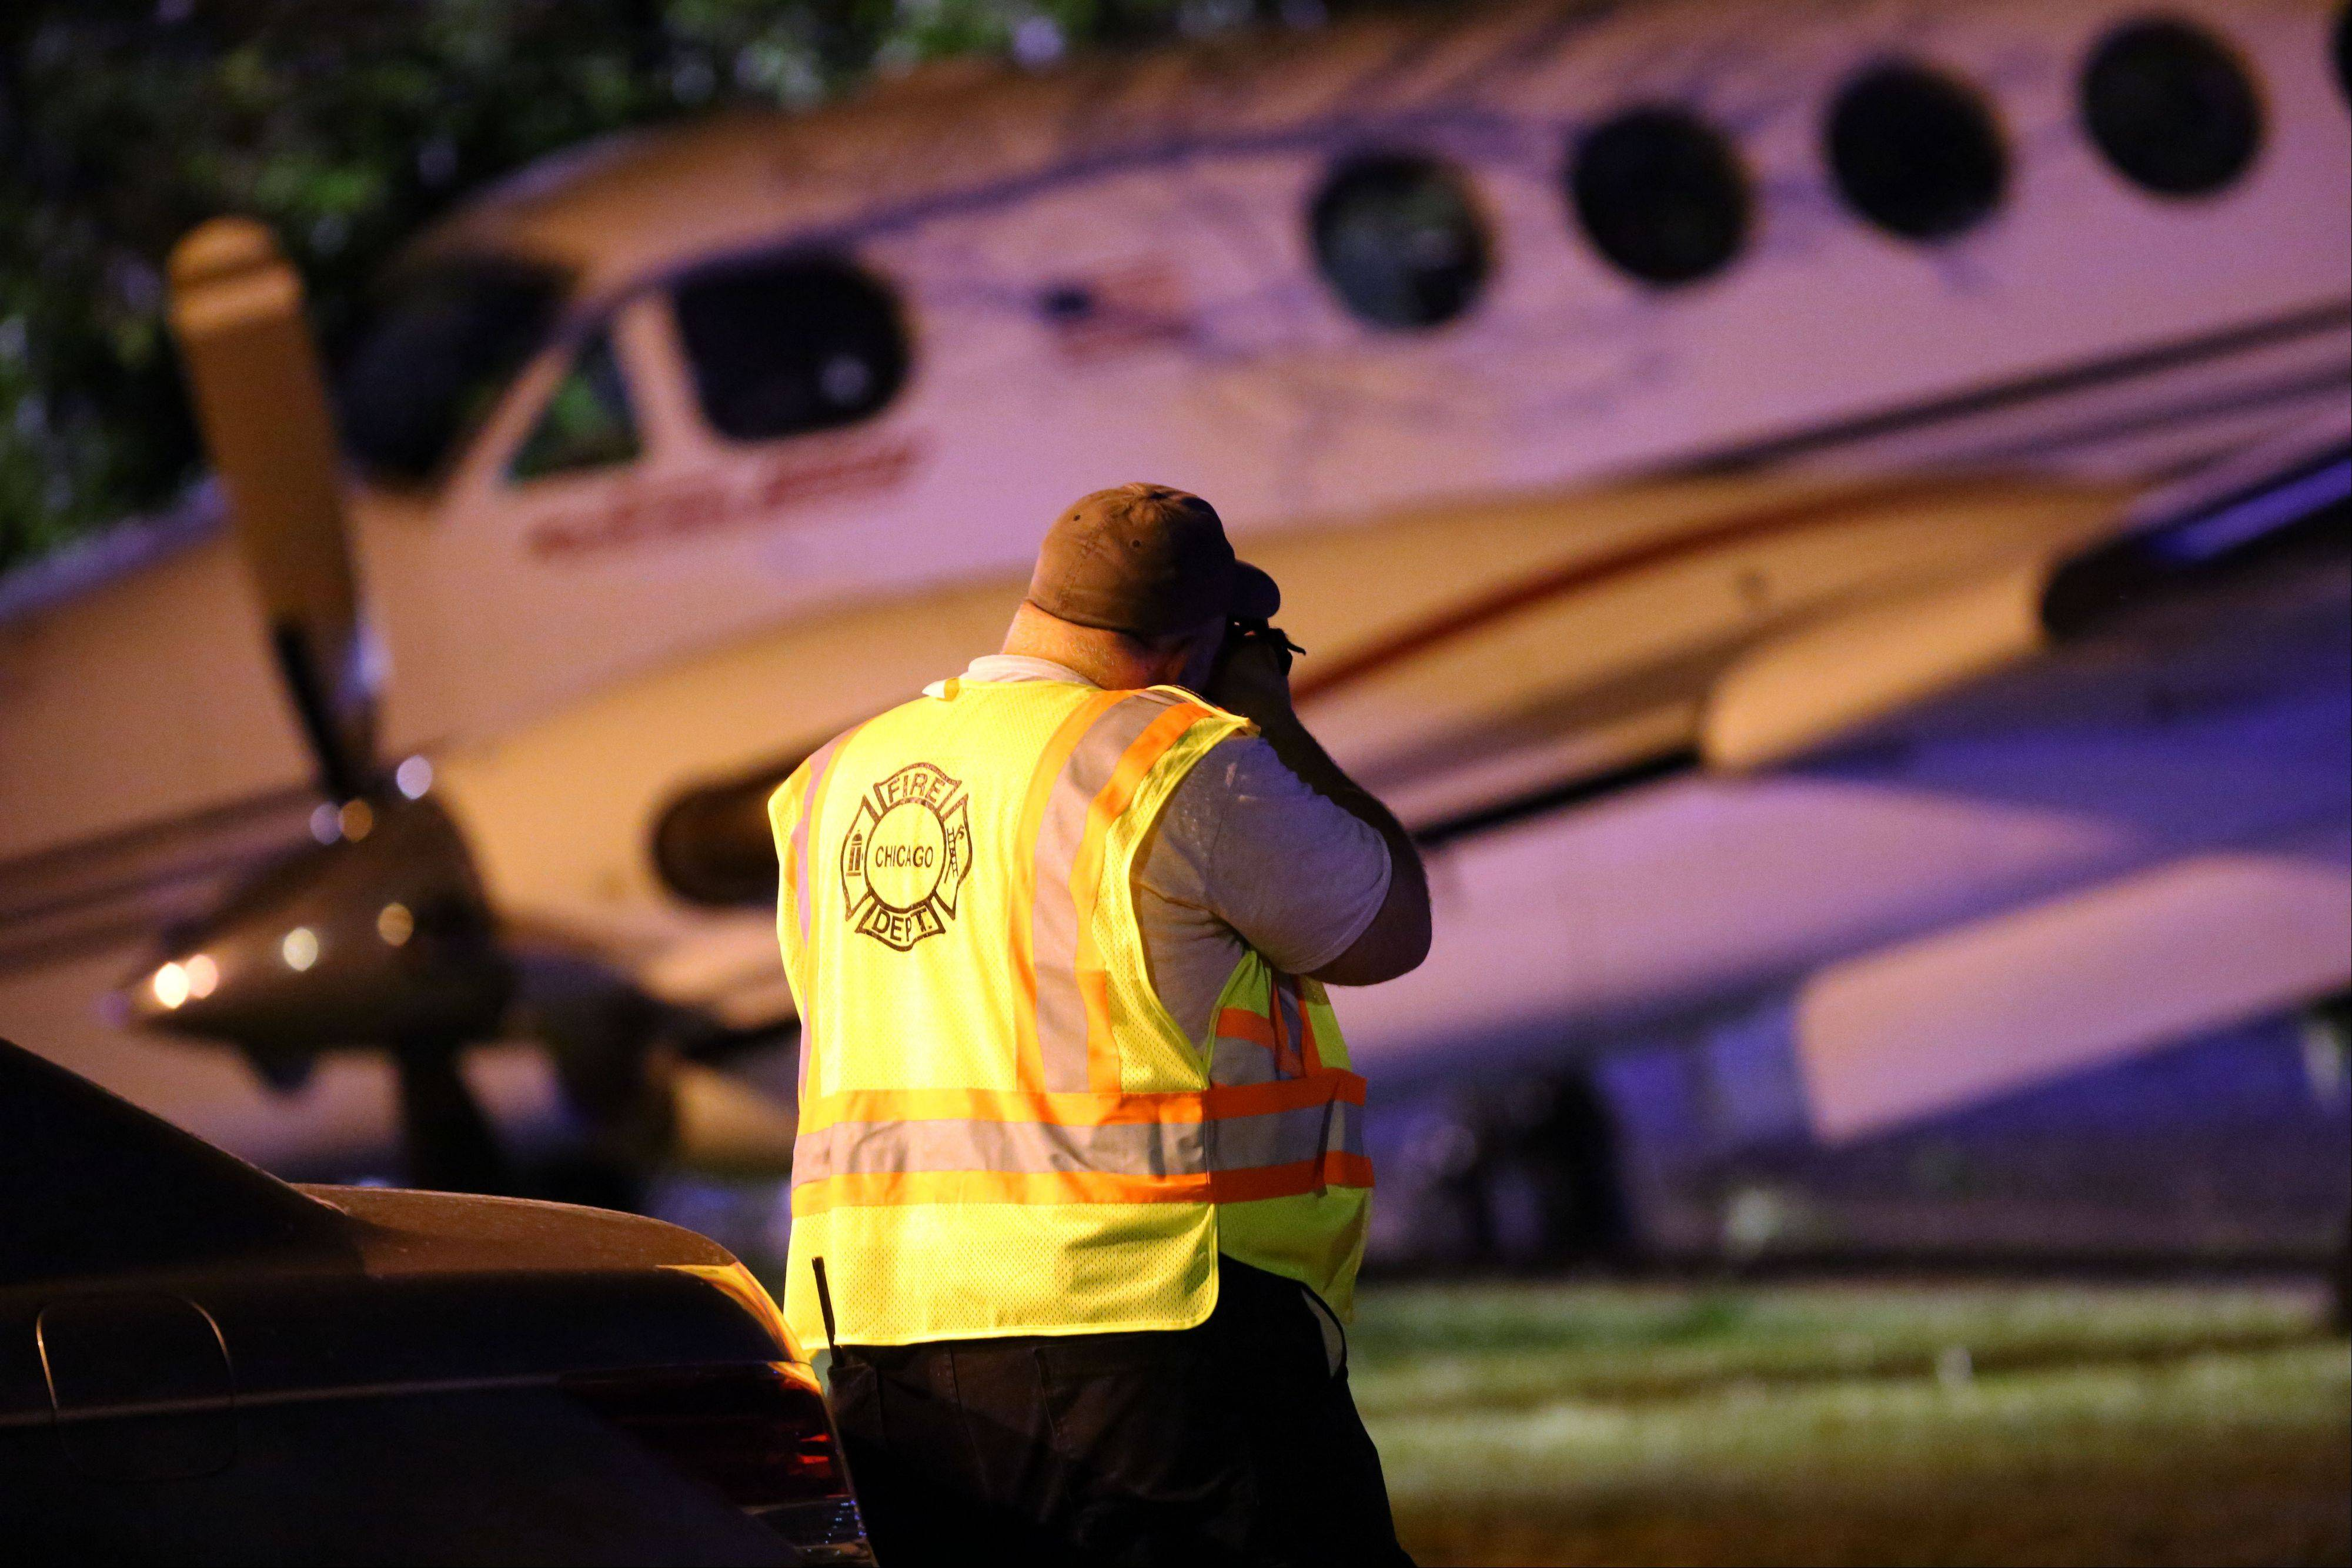 An investigator shoots pictures of a plane that crashed Tuesday on Wolf Road in Wheeling near the Foxboro Apartments.